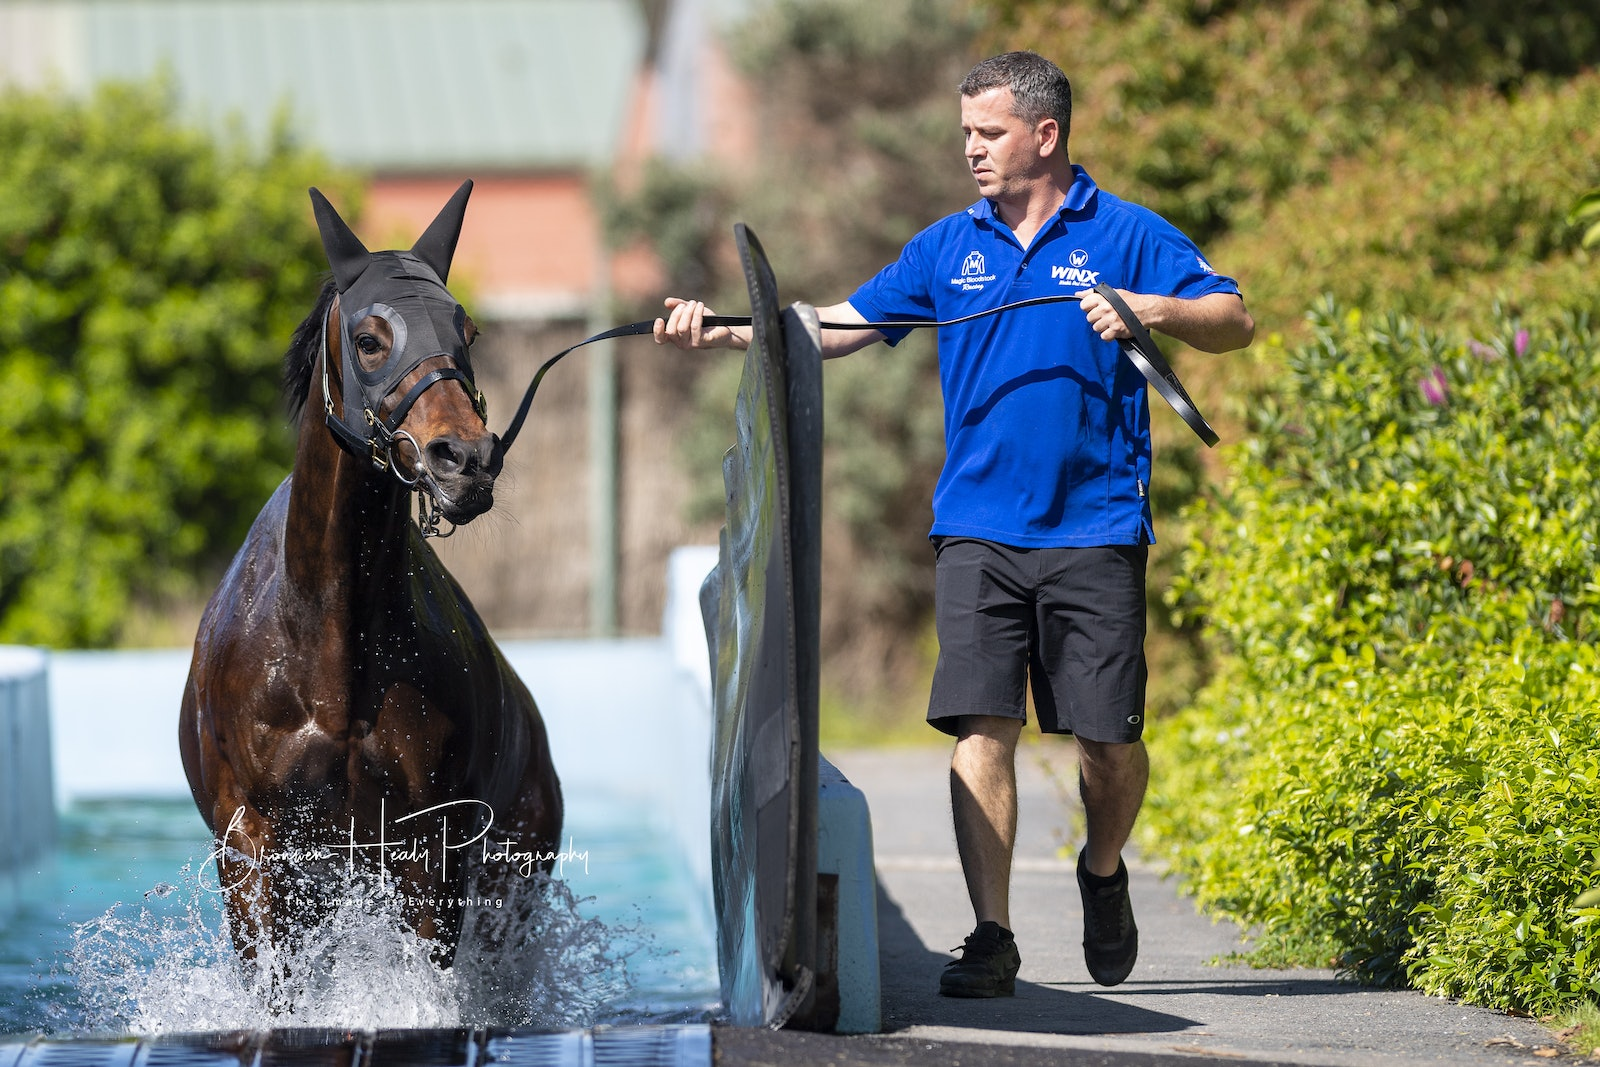 Winx-FlemingtonPool-20181026-3675 - Triple Cox Plate winner WINX swims at Flemington before attempting a record breaking 4th Cox Plate victory.  She is...